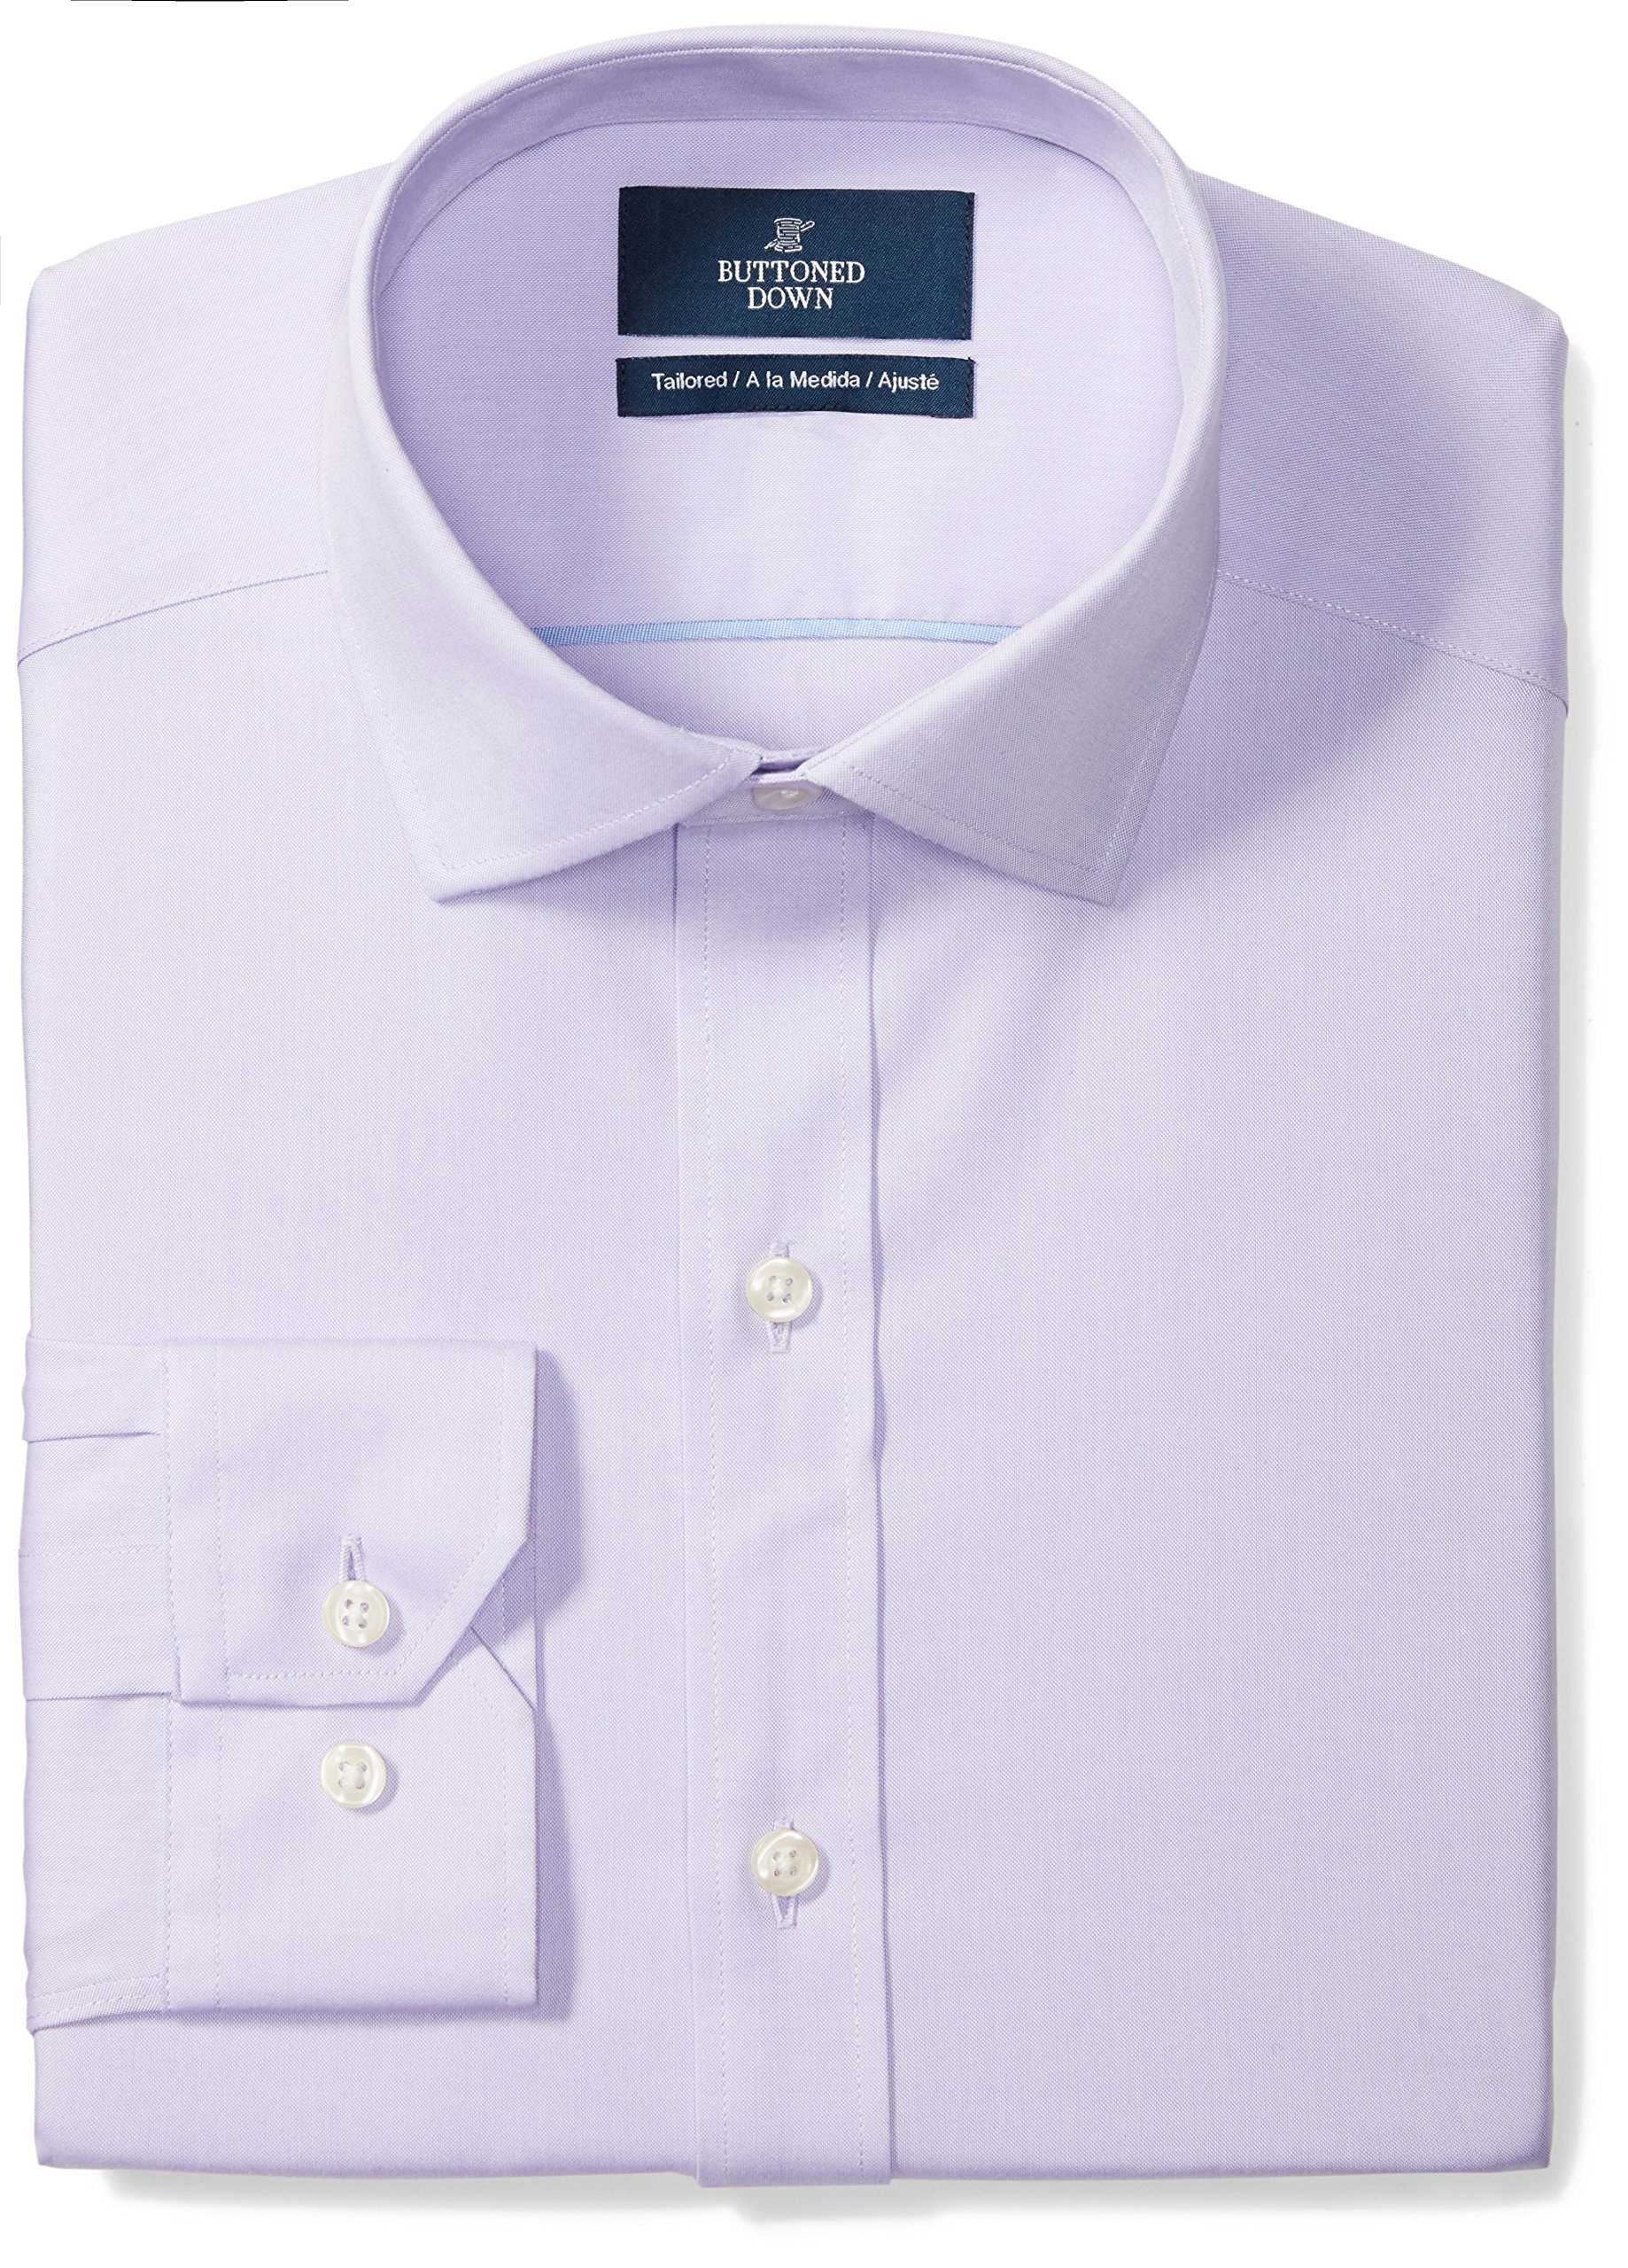 """Amazon Brand - Buttoned Down Men's Tailored-Fit Spread Collar Pinpoint Non-Iron Dress Shirt, Purple, 18.5"""" Neck 36"""" Sleeve (Big and Tall)"""